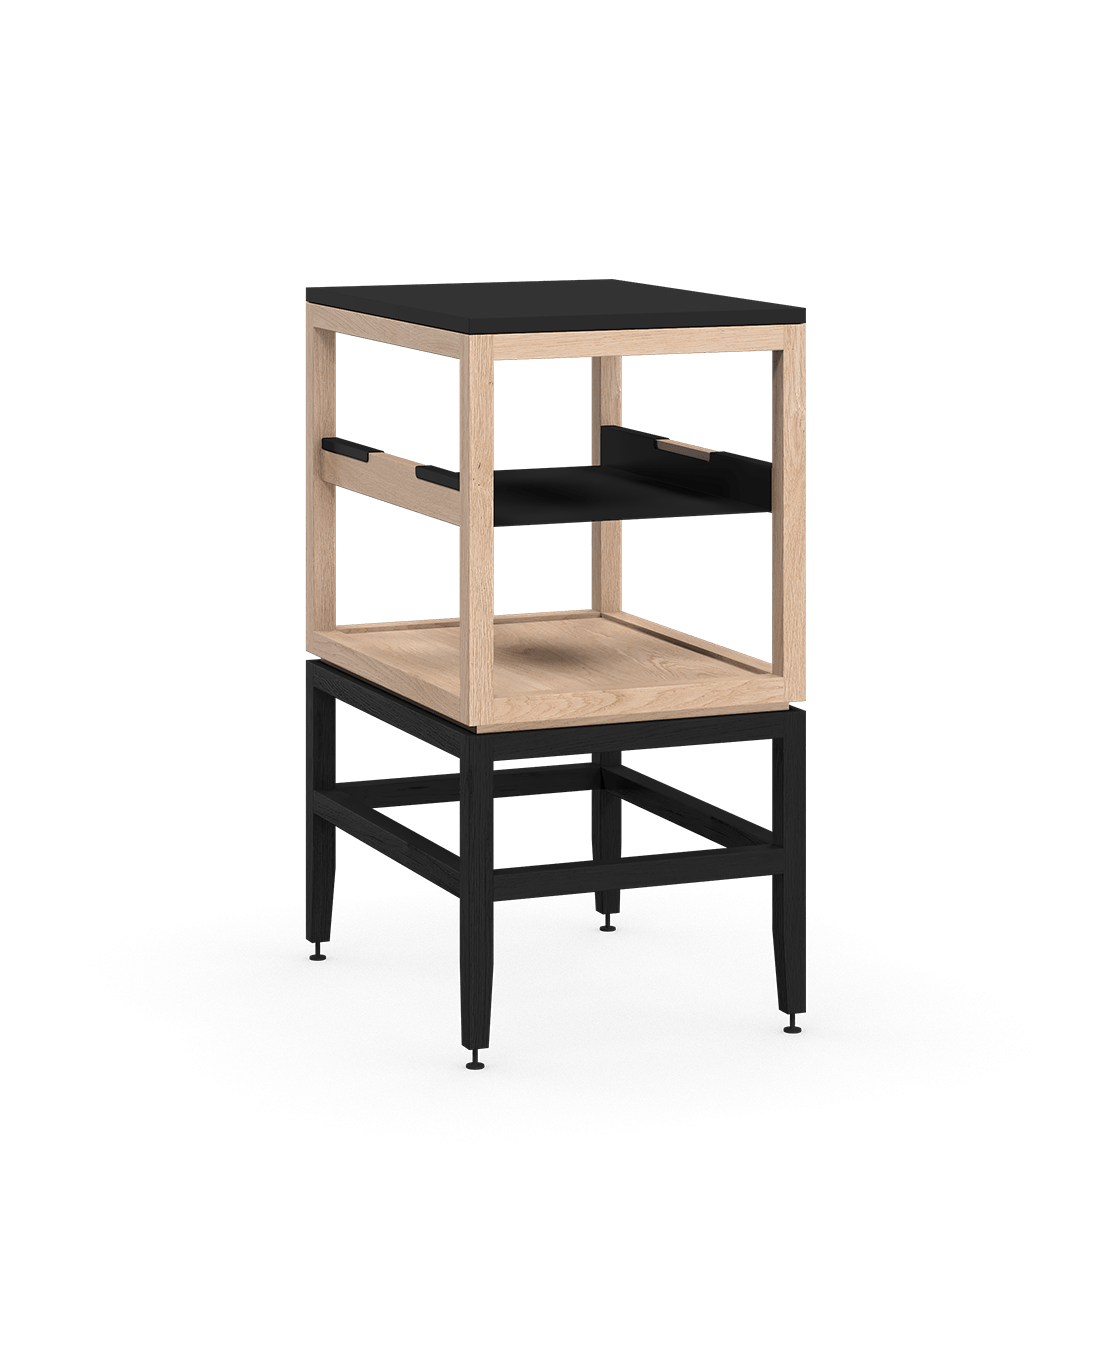 coquo volitare midnight black stained white oak solid wood modular cube 1 shelf storage open cabinet 18 inch C2-N-1824-0012-NA-BK